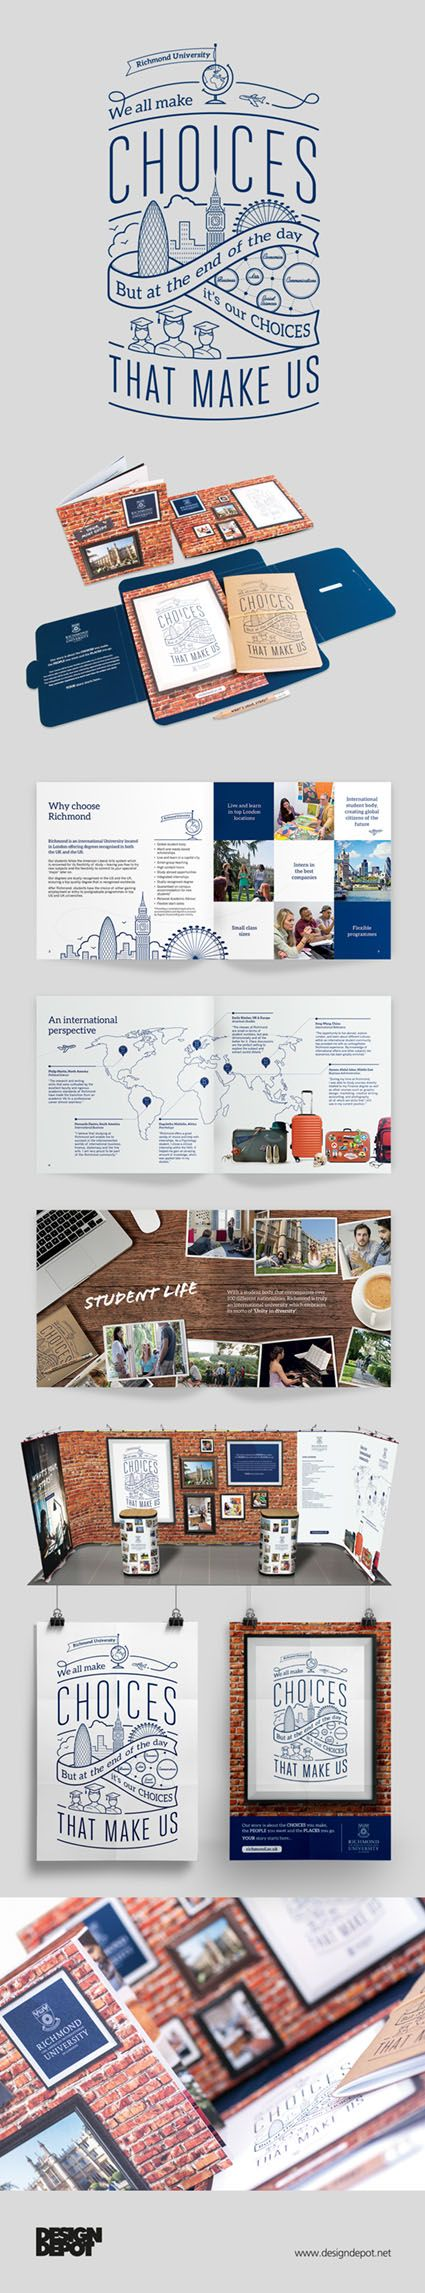 Richmond artwork, London, university, identity, welcome pack, branding, design depot, prospectus, education, #DesignDepot                                                                                                                                                                                 Más